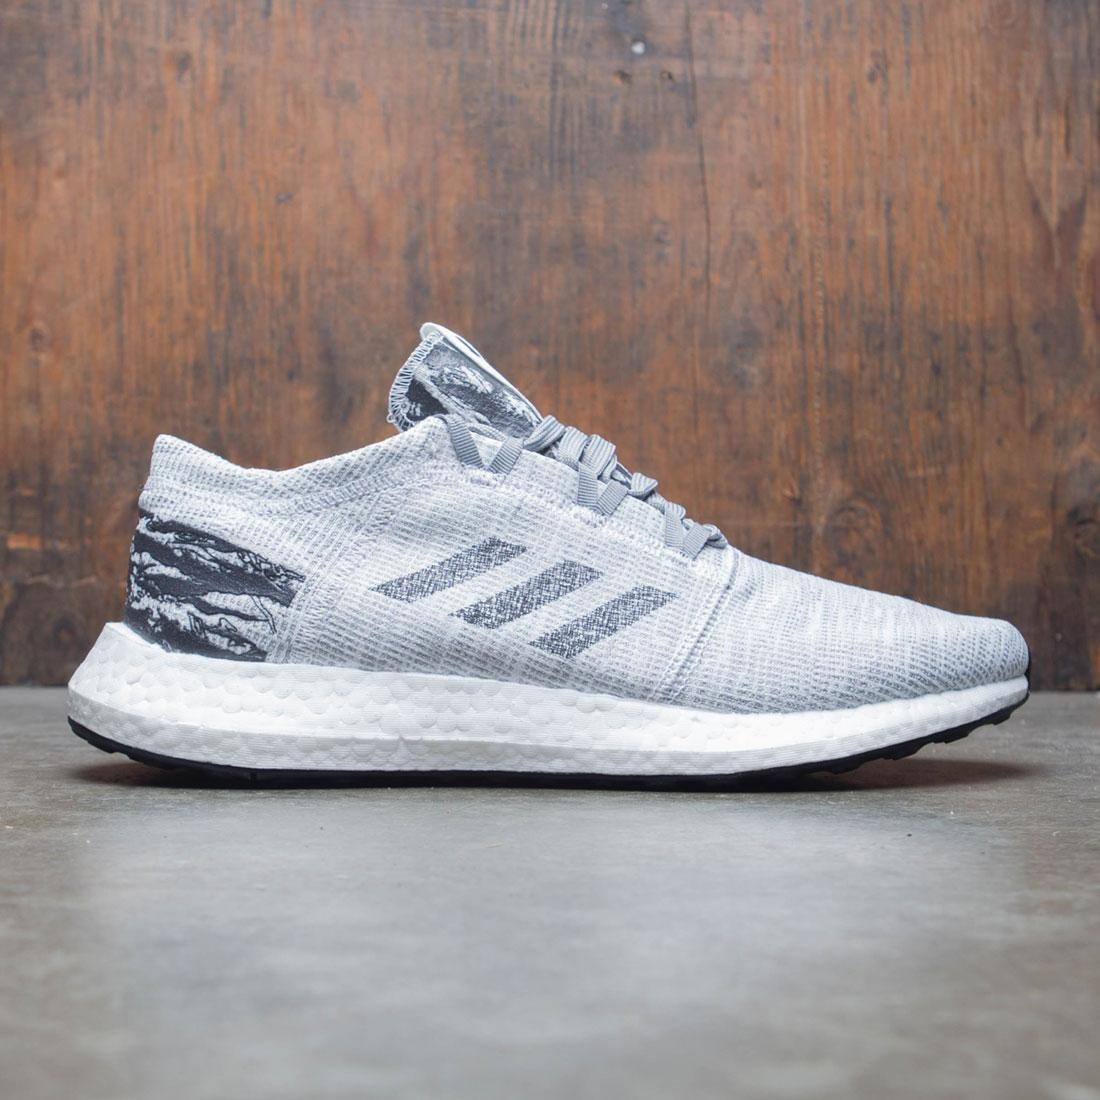 3f2cb35a39a8b Adidas x Undefeated Men Pureboost GO gray shift grey cinder utility black